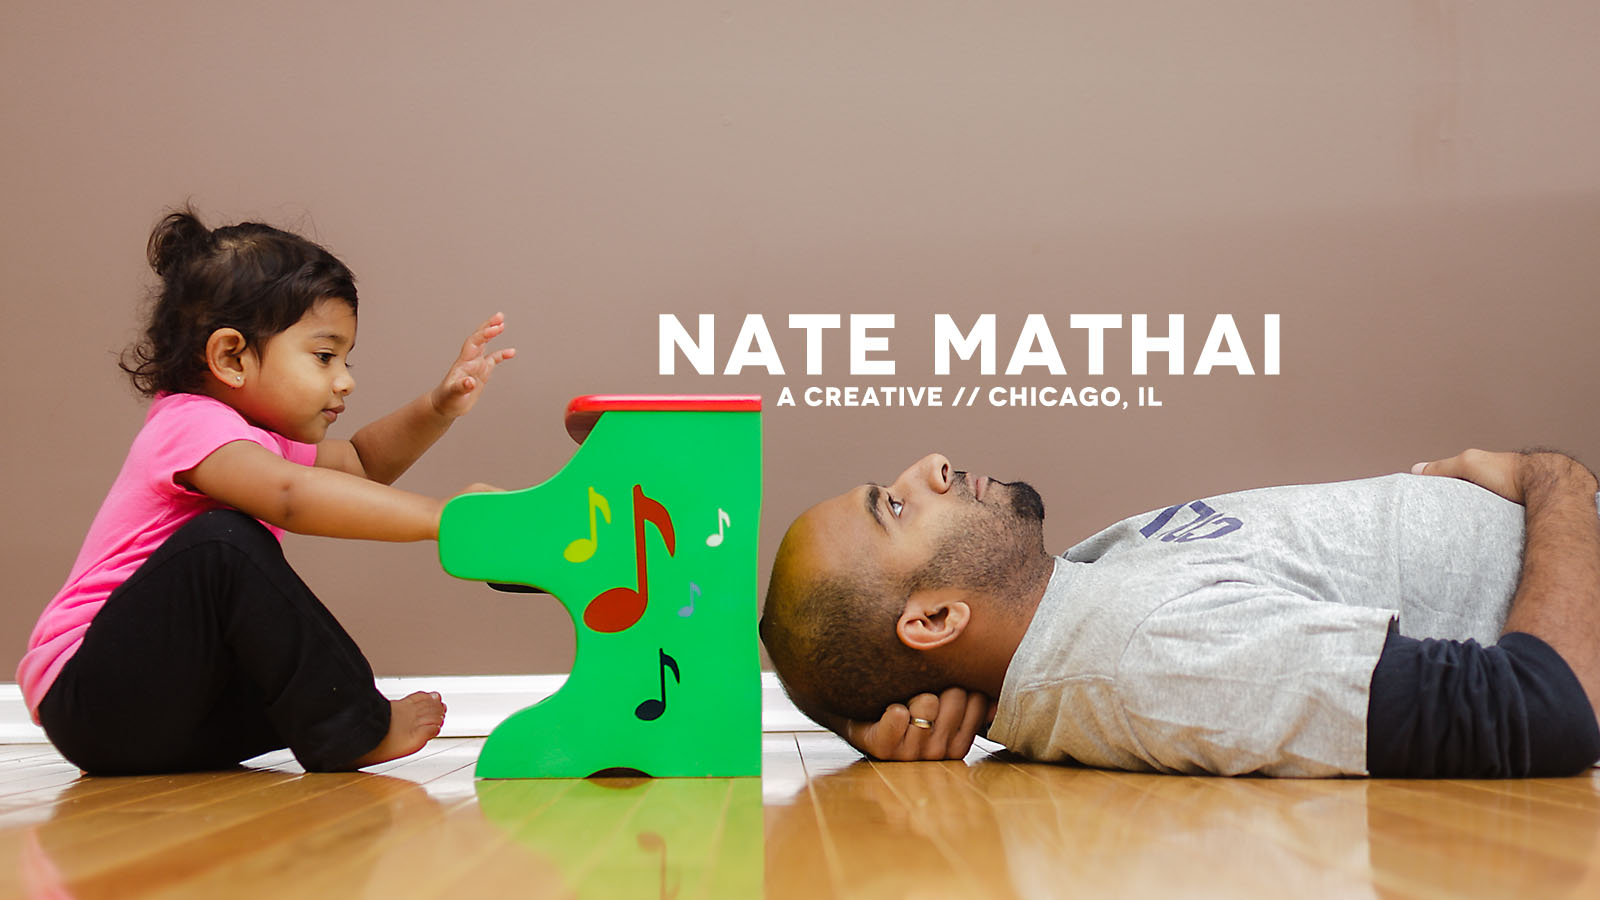 top image for Wedding Teasers! :) by chicago wedding photographer nate mathai